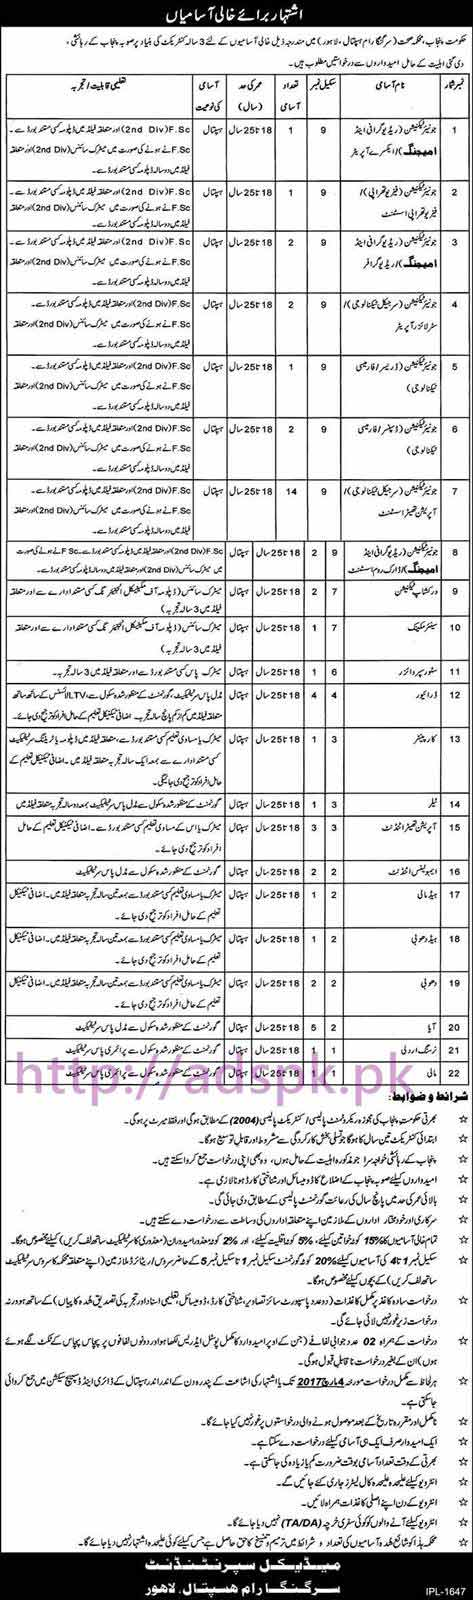 New Career Jobs Sir Ganga Ram Hospital Lahore Punjab Govt. Jobs for BPS-01 to BPS-09 Junior Technicians and Other Staff Application Deadline 04-03-2017 Apply Now